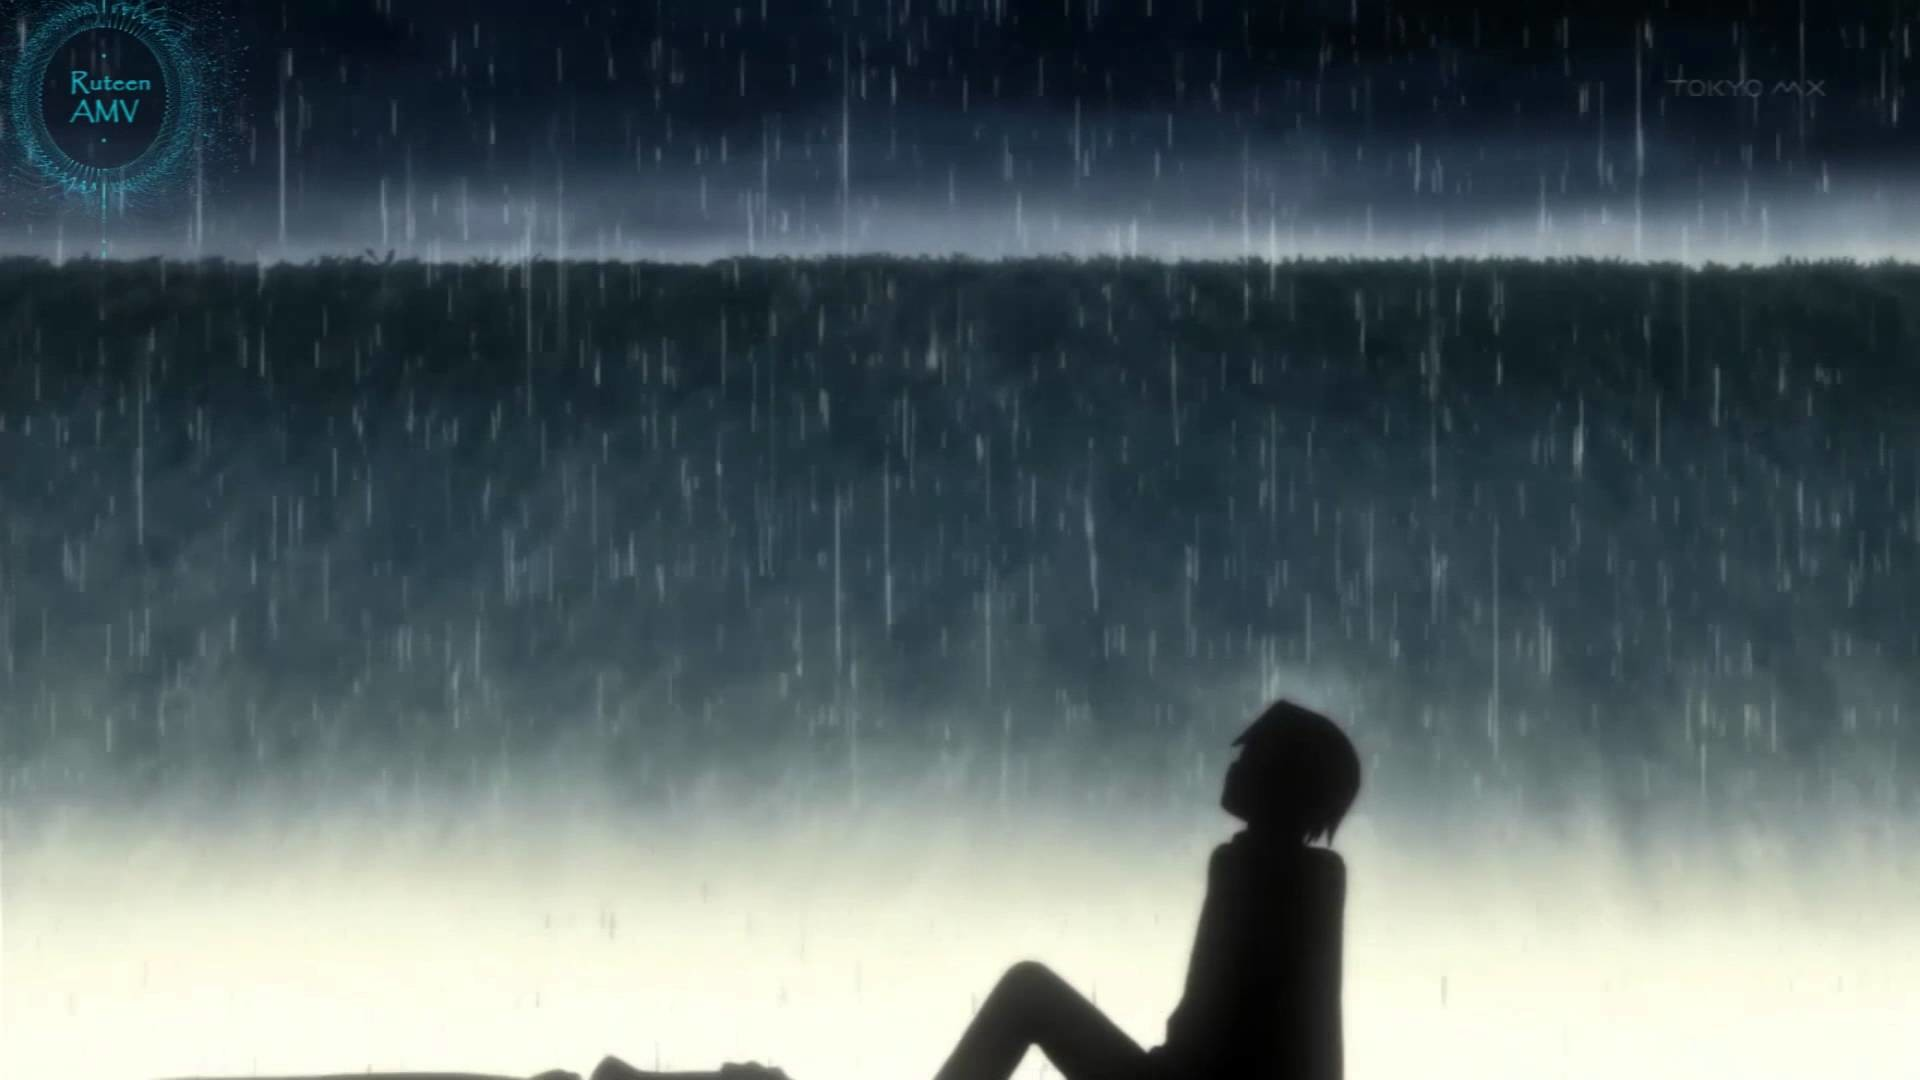 Sad anime wallpapers 78 images - Anime background for youtube ...